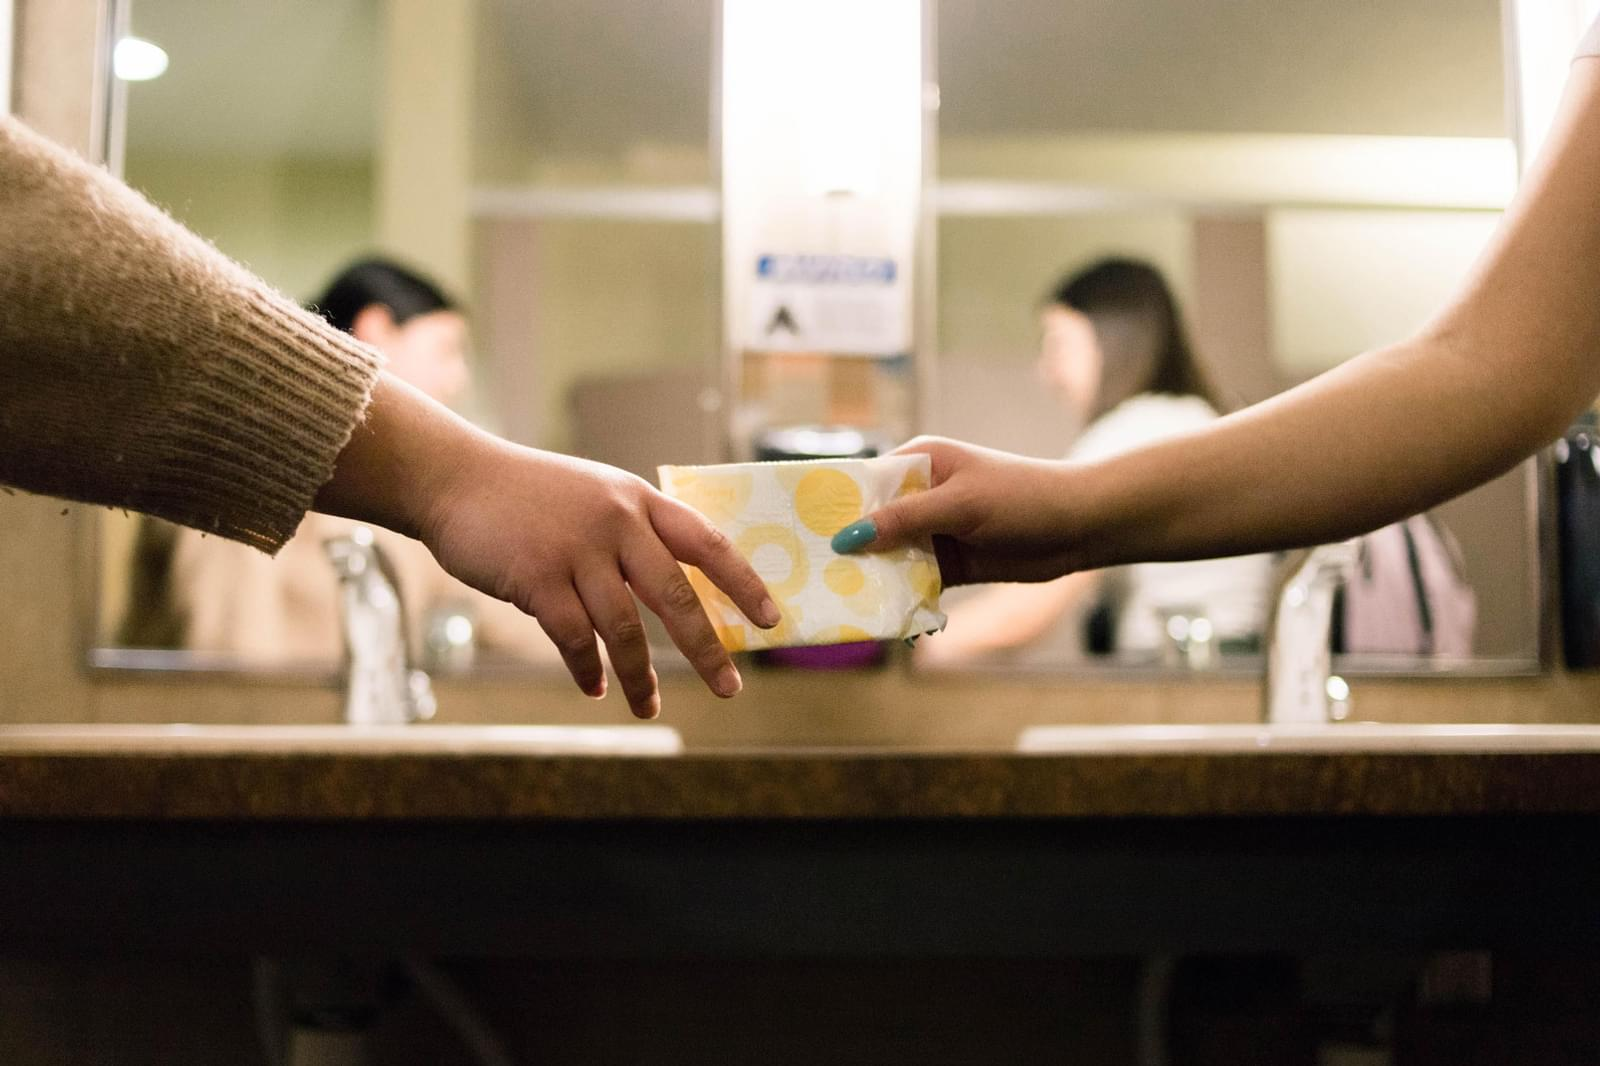 two hands passing sanitary products